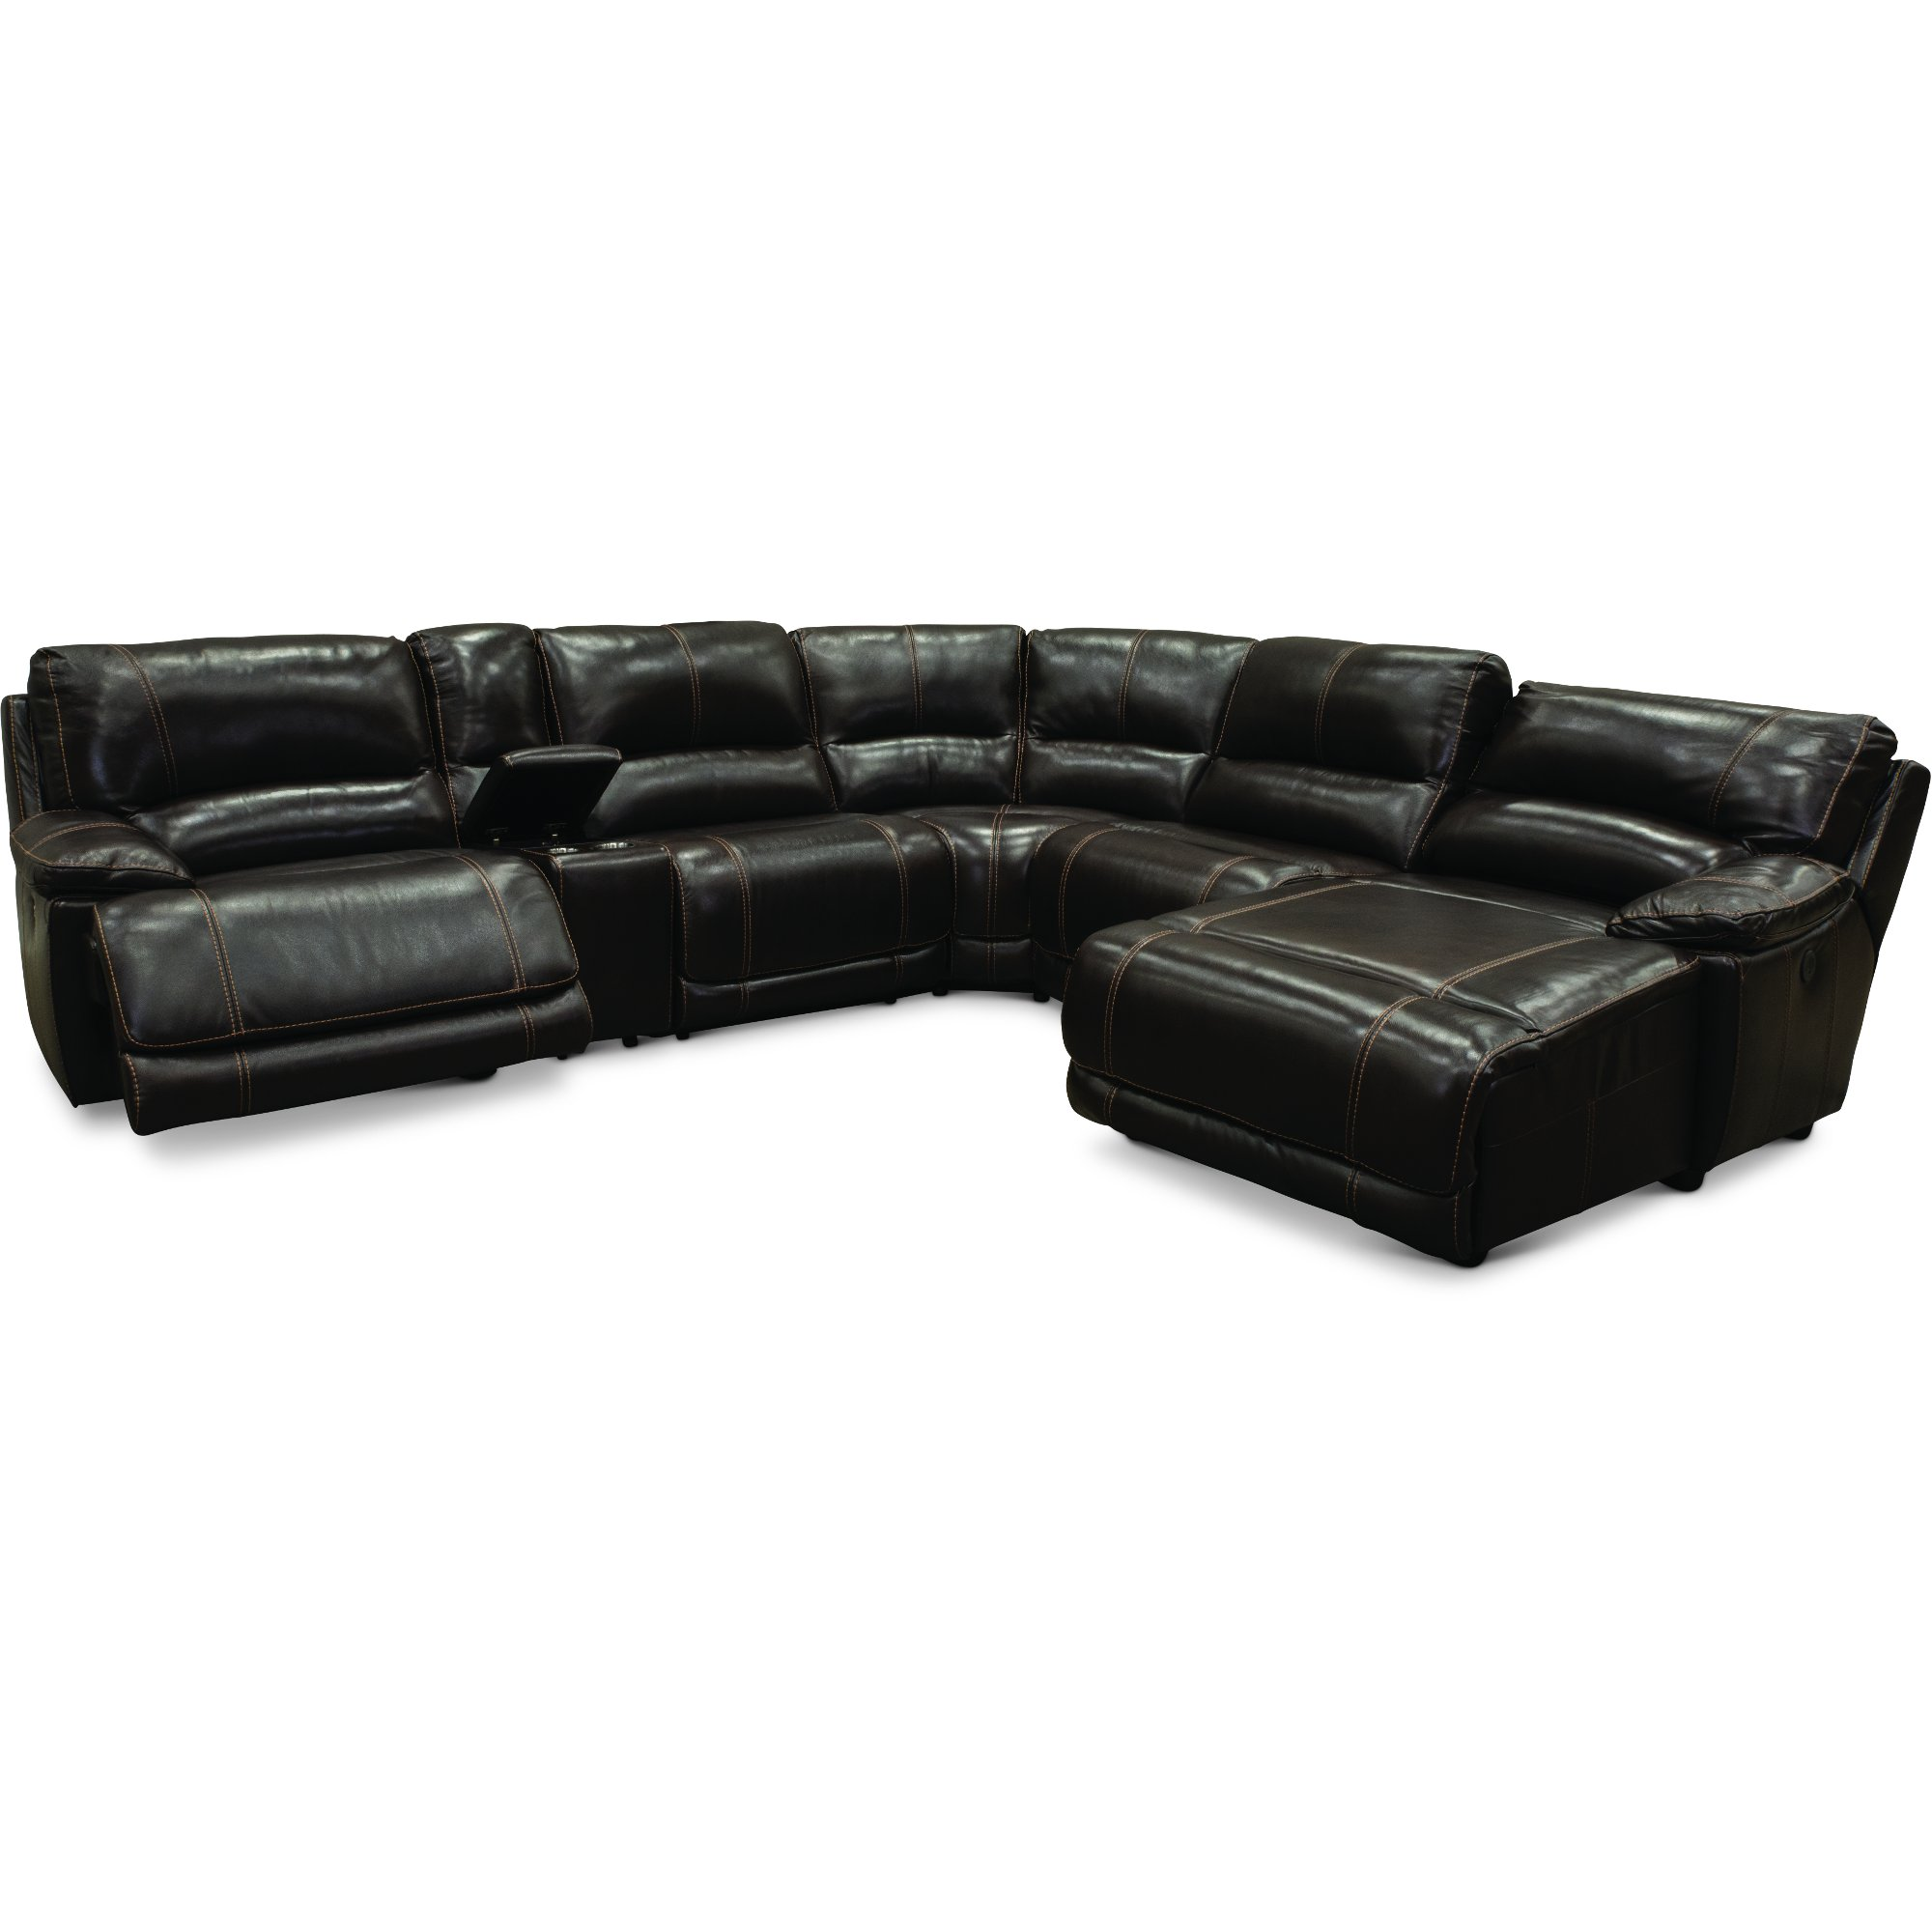 Brown Leather-Match Power Reclining Sectional Sofa - Brant